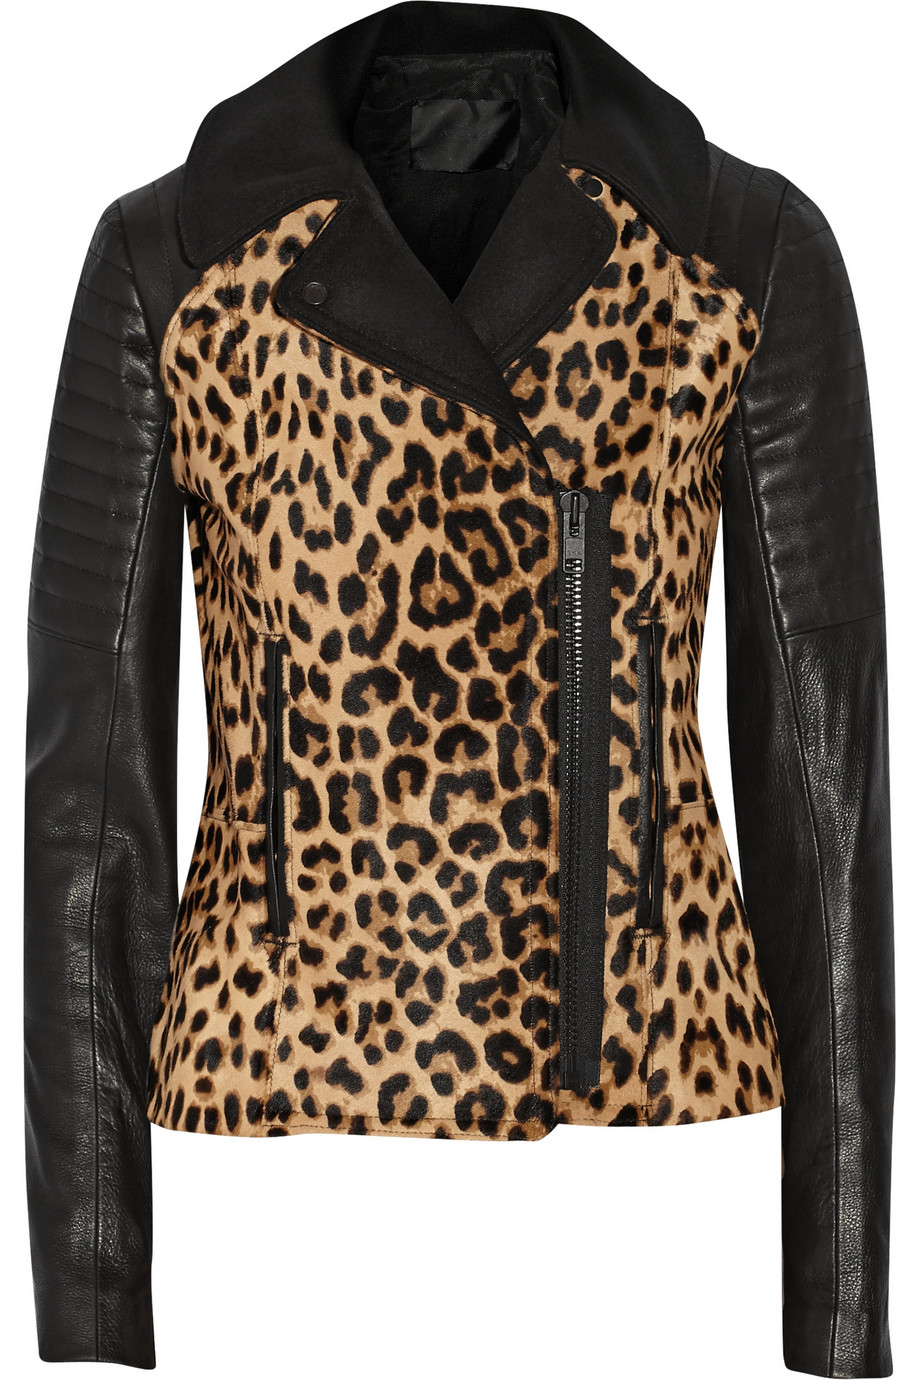 a79b616a8528 Alc Leopard Print Leather Jacket | HEWI London